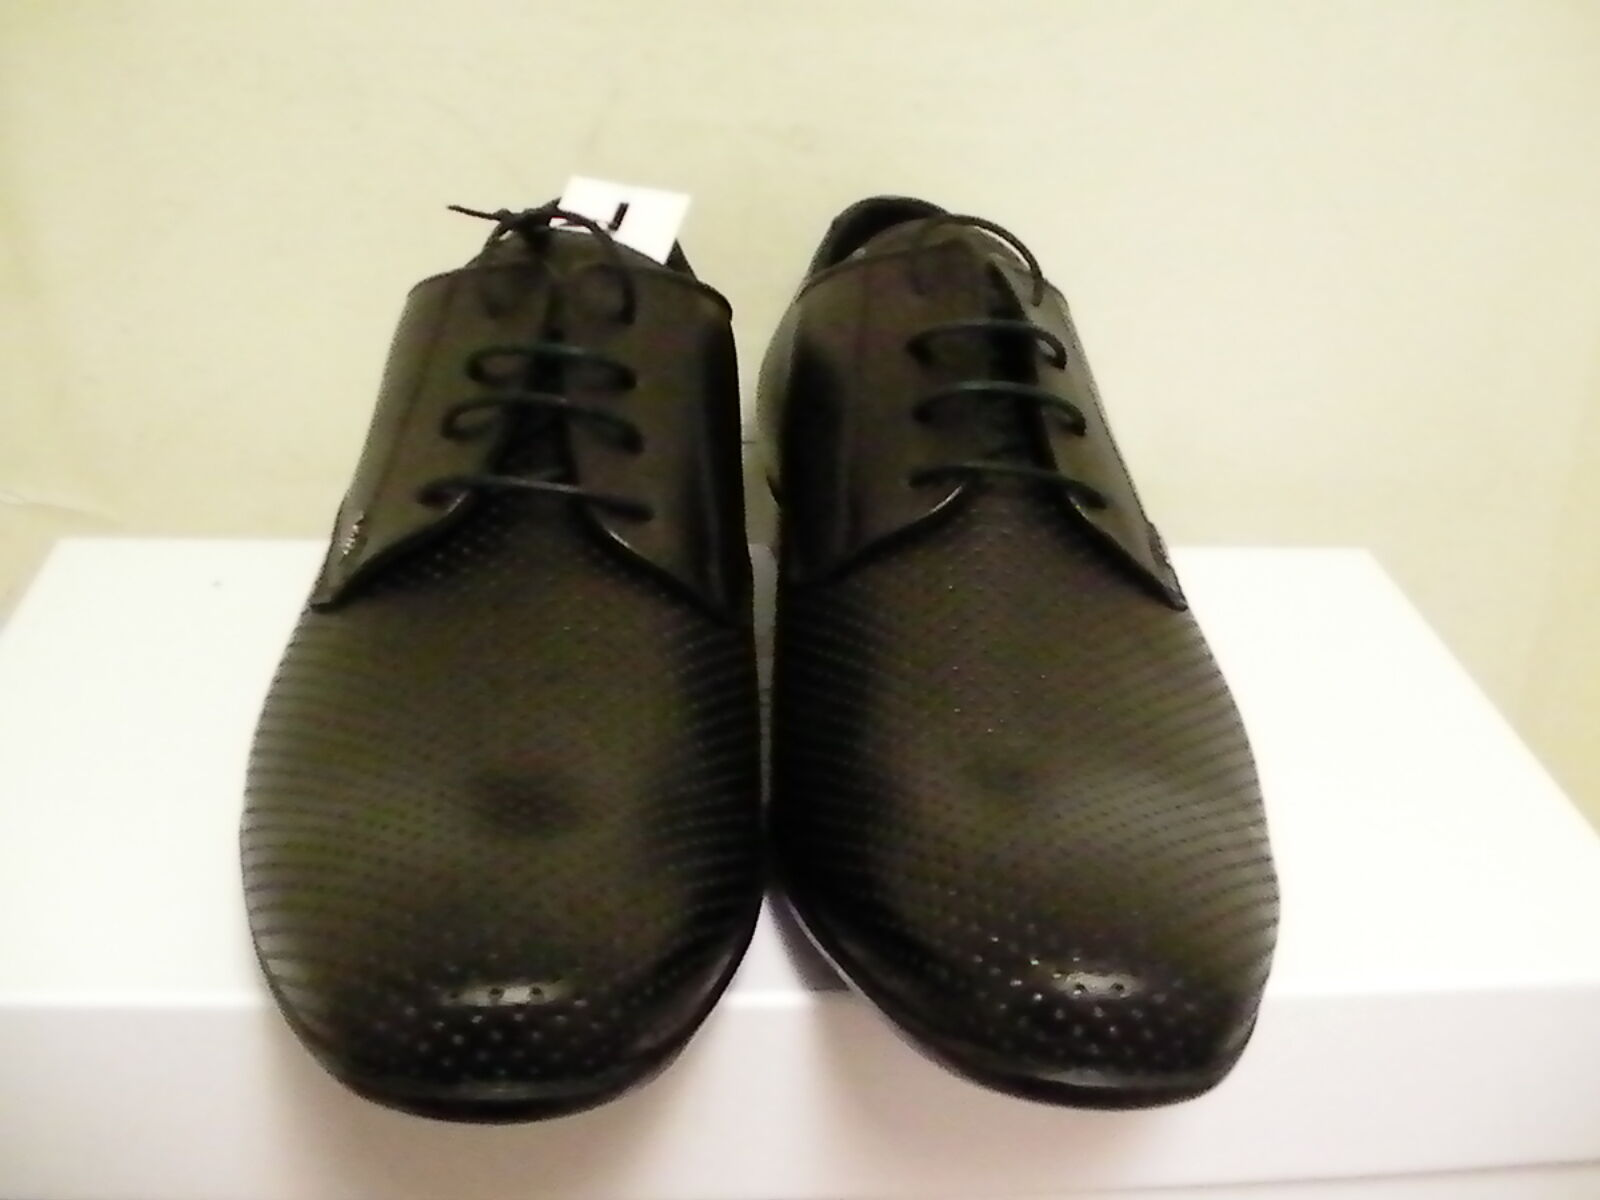 Versace mens shoes dressing new collection leather black size 40 euro